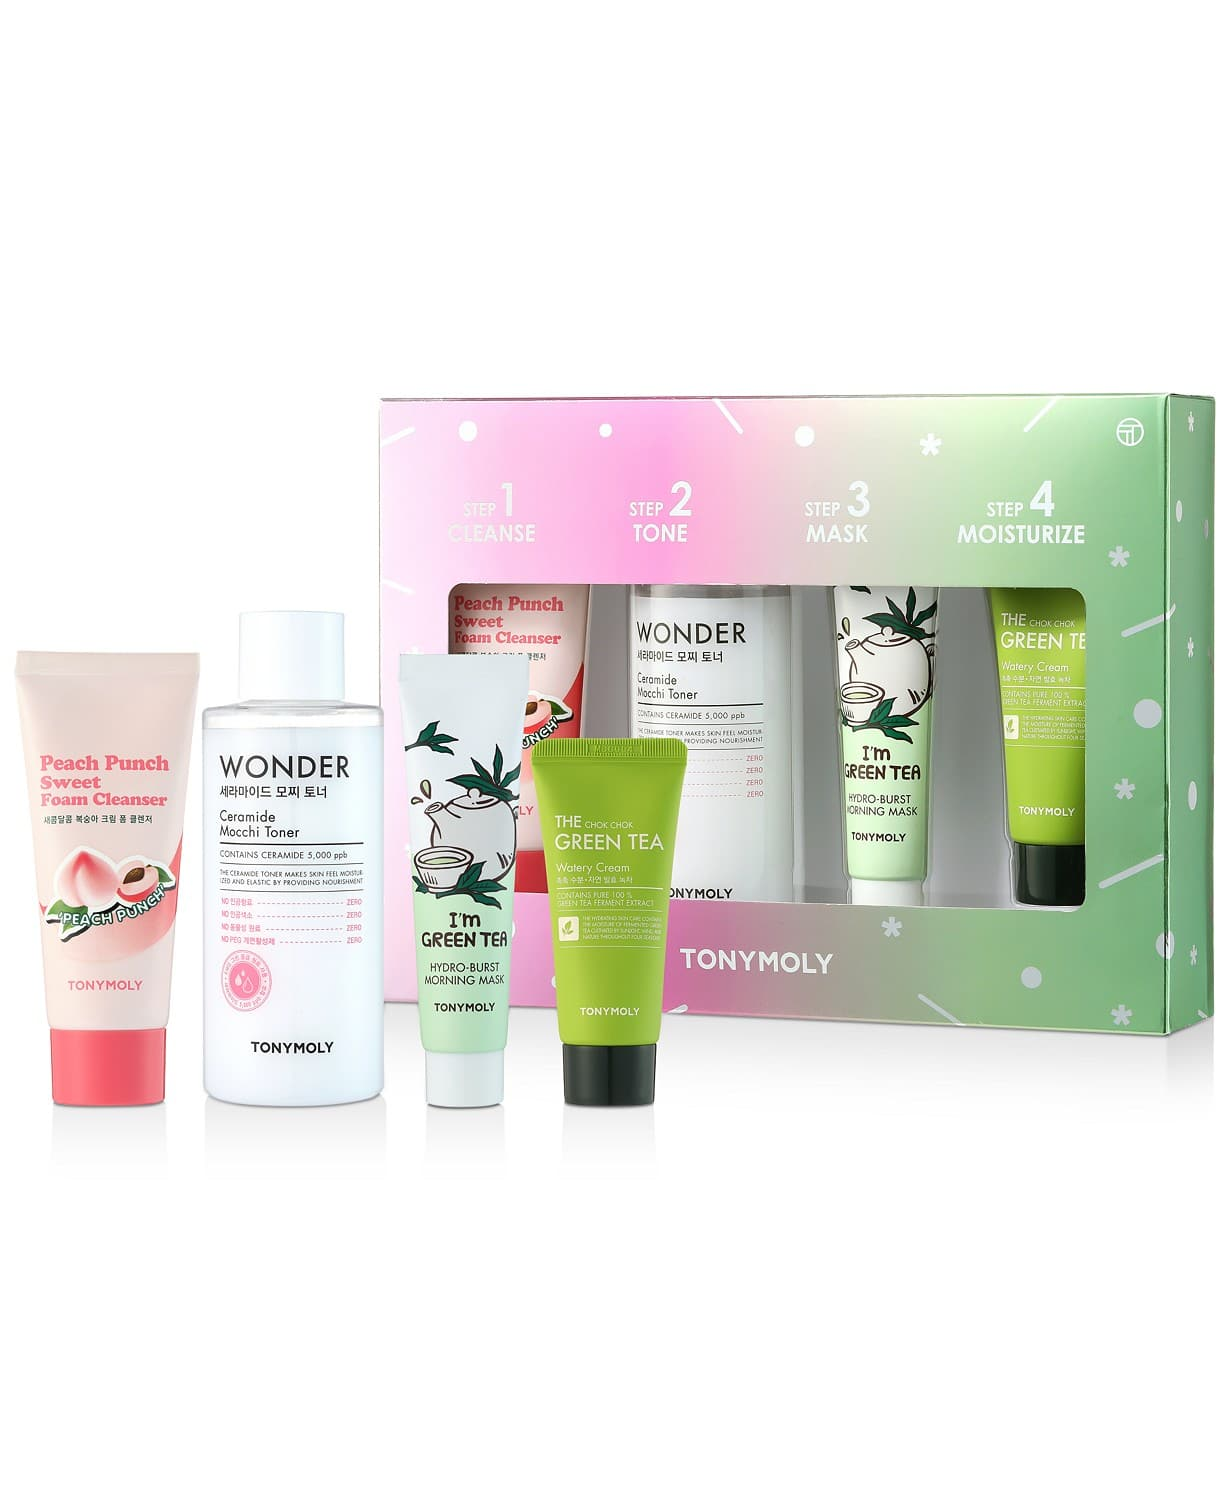 4-Piece TONYMOLY Four Steps For Glowing Skin Care Set $11.90 + Free S/H on $25+